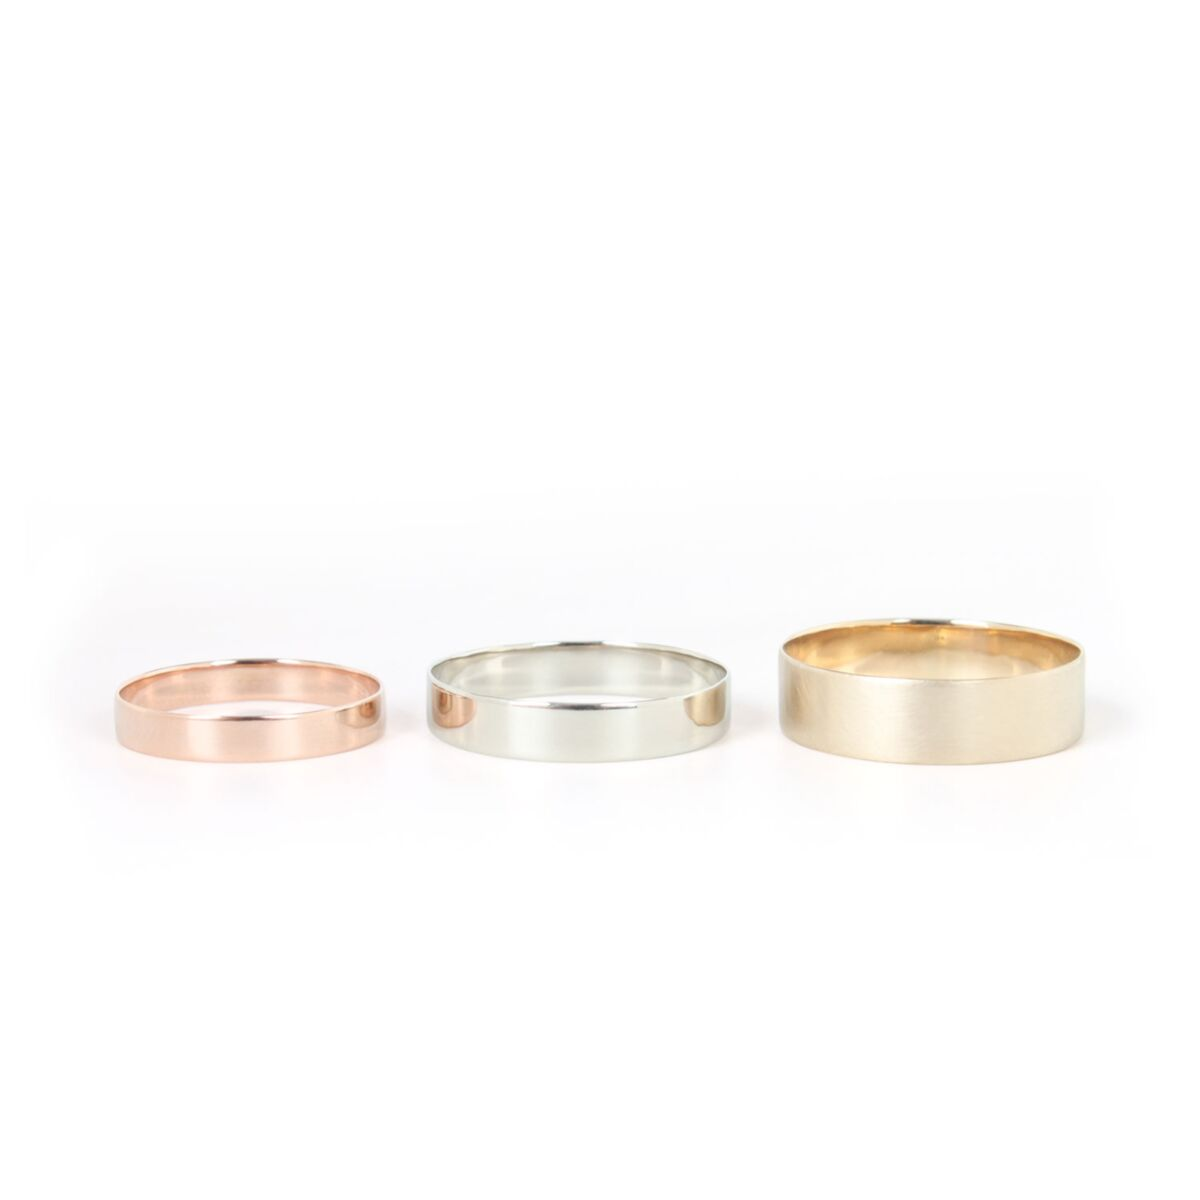 Thin Rings, 4mm image